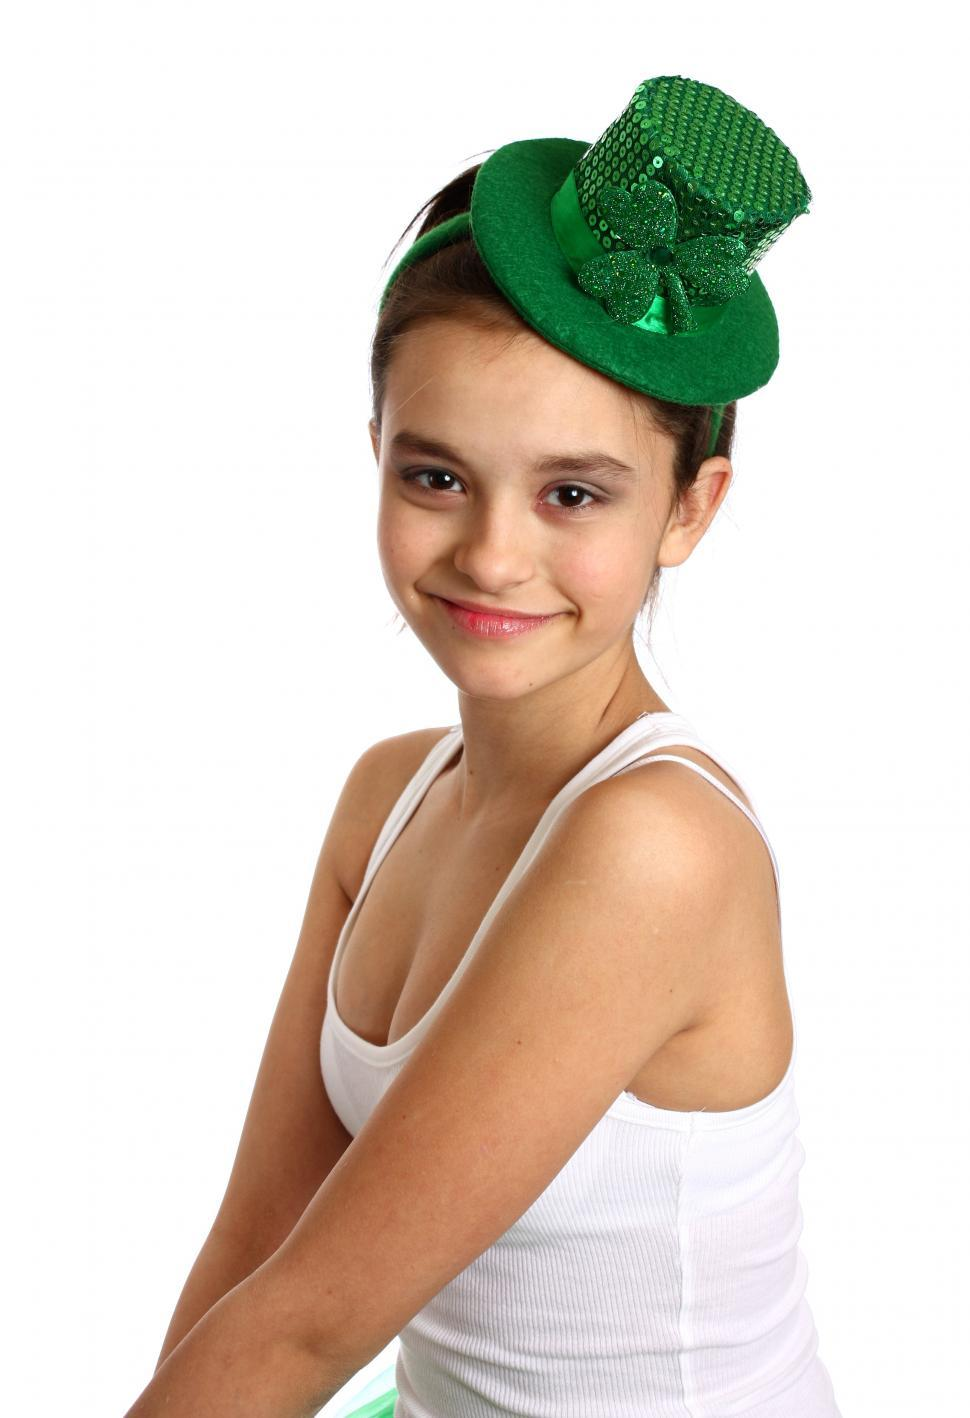 Download Free Stock HD Photo of A cute young girl dressed for Saint Patricks Day Online